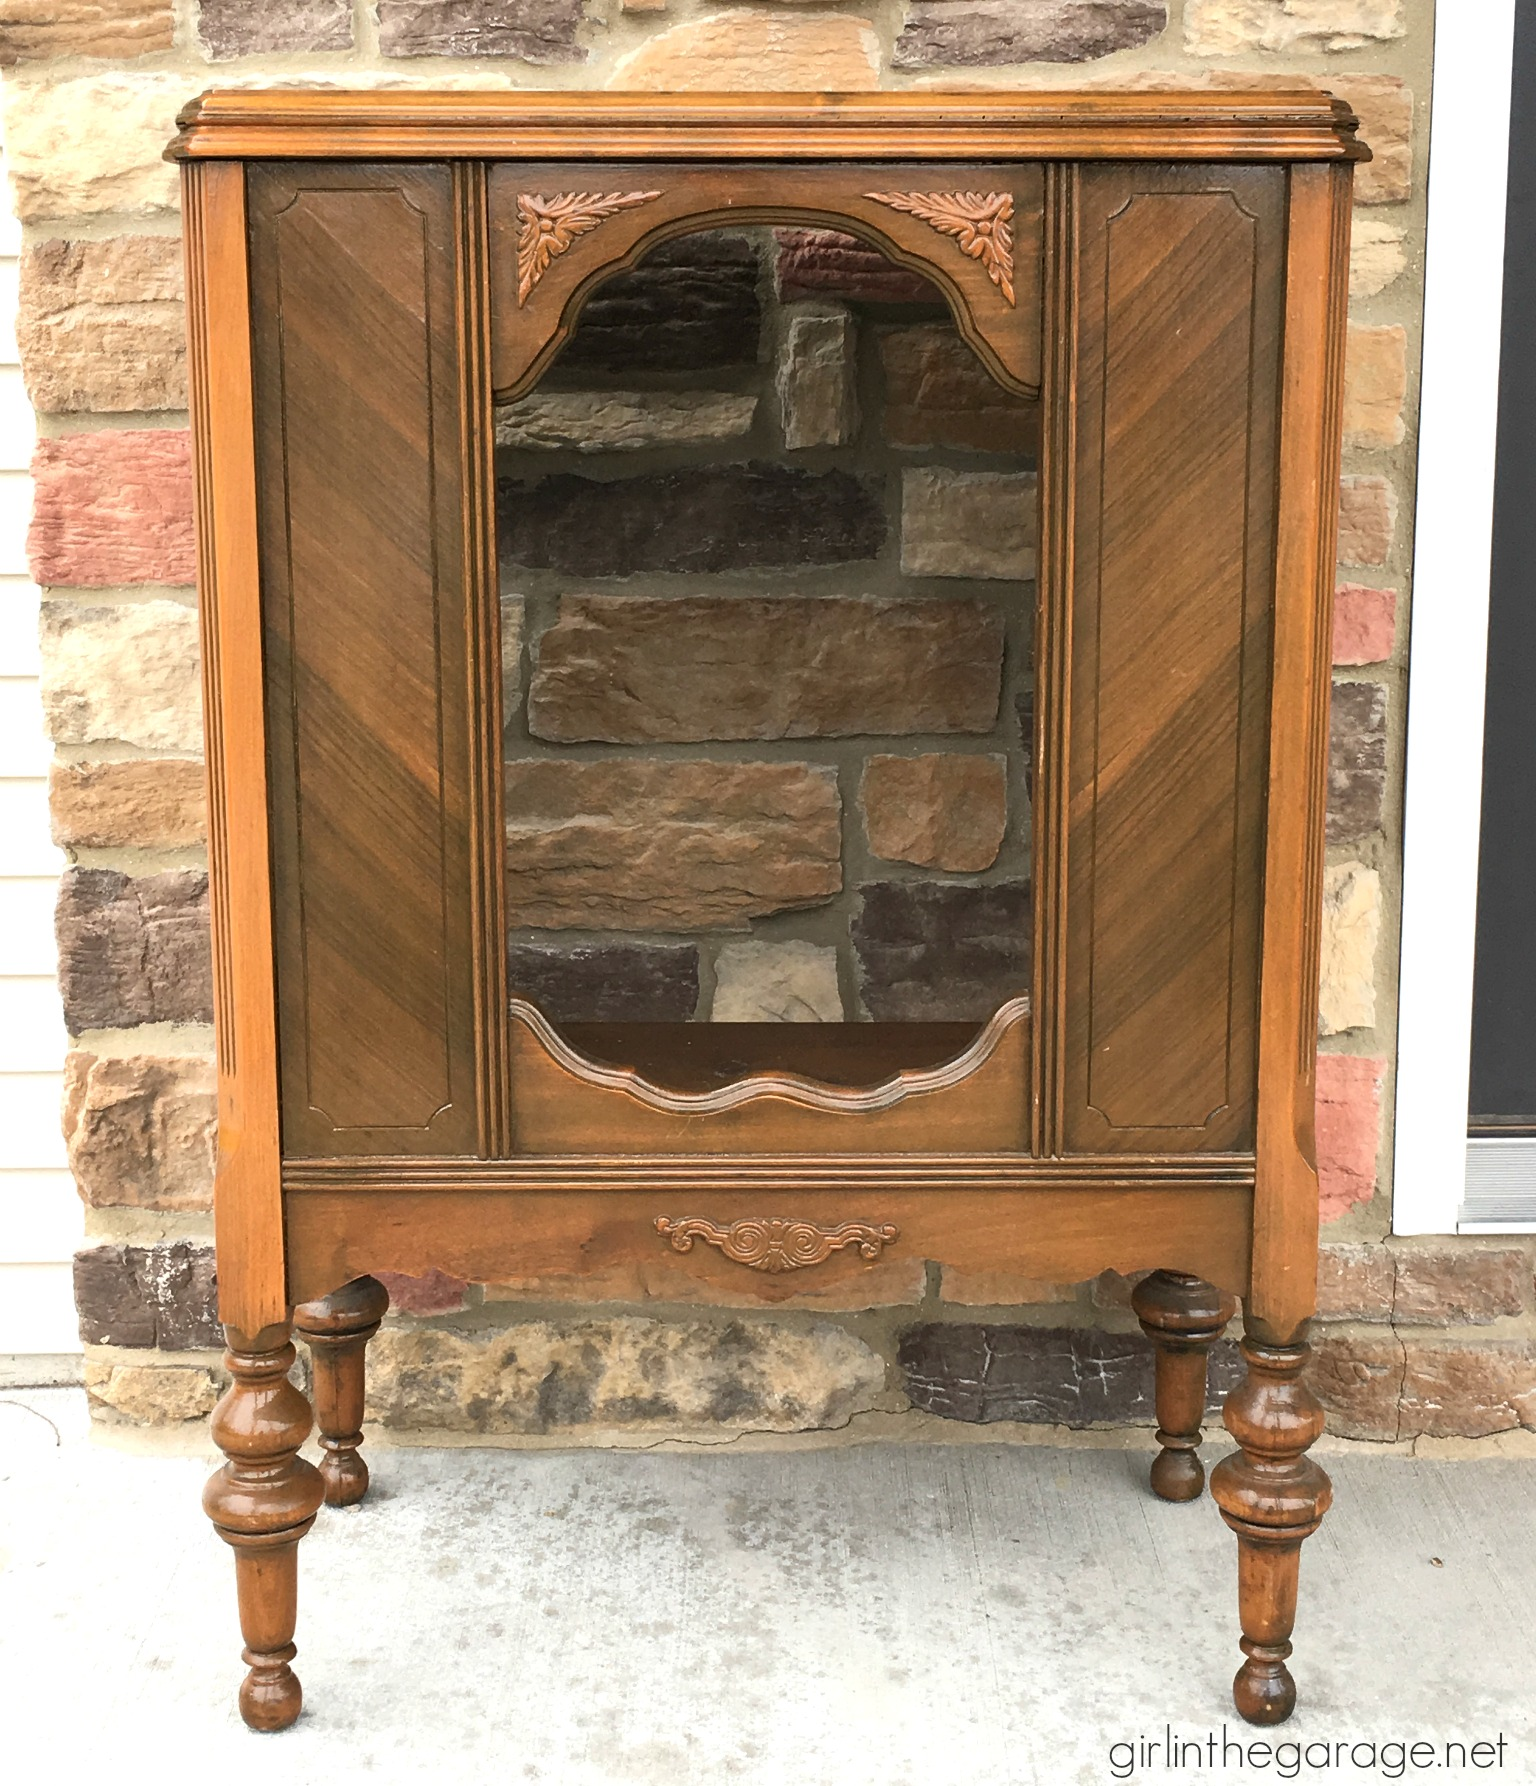 Repurposed antique radio cabinet makeover to bookcase - by Girl in the  Garage - Yard Sale Radio Cabinet Makeover Girl In The Garage®